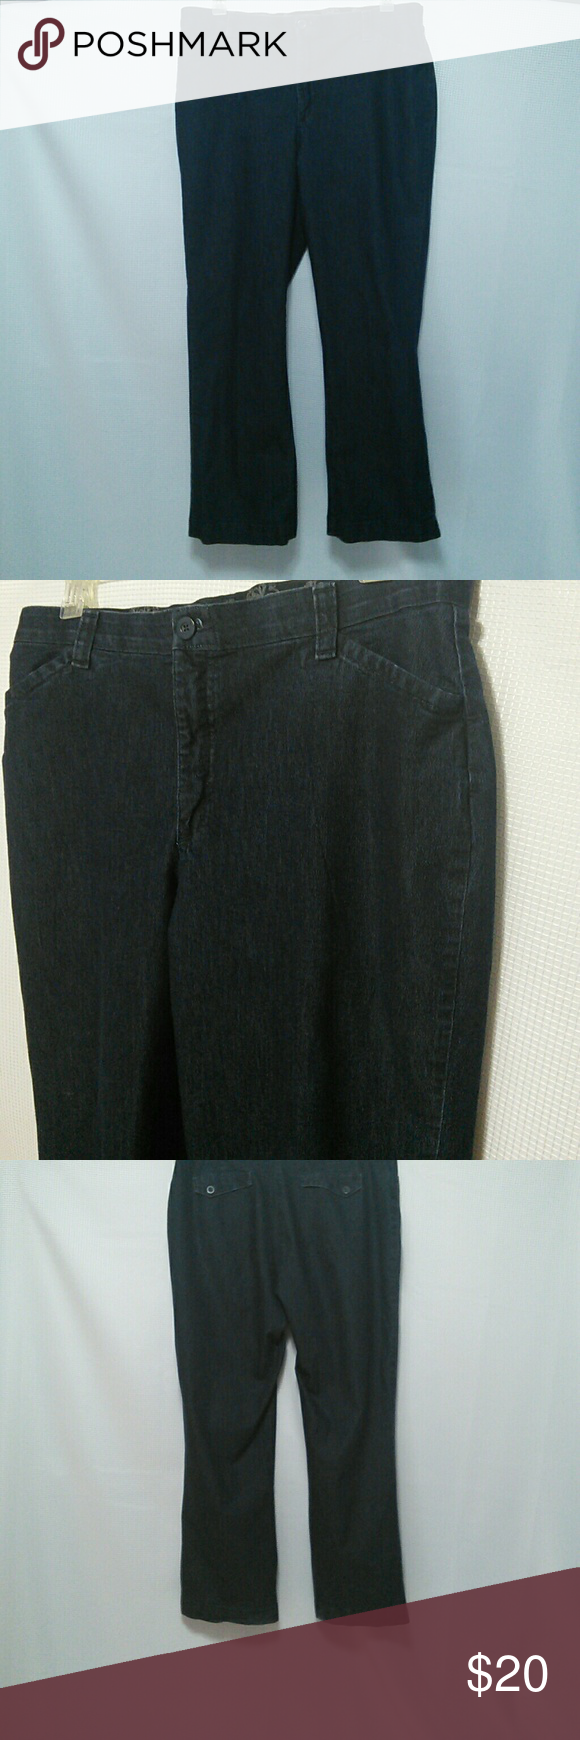 LEE Stretch Jeans Womens Straight Leg 18 Dark Blue Size 18 Women's Lee Stretch Jeans 72% Cotton 26% Polyester 2% Spandex. Extremely comfortable Lee Jeans Flare